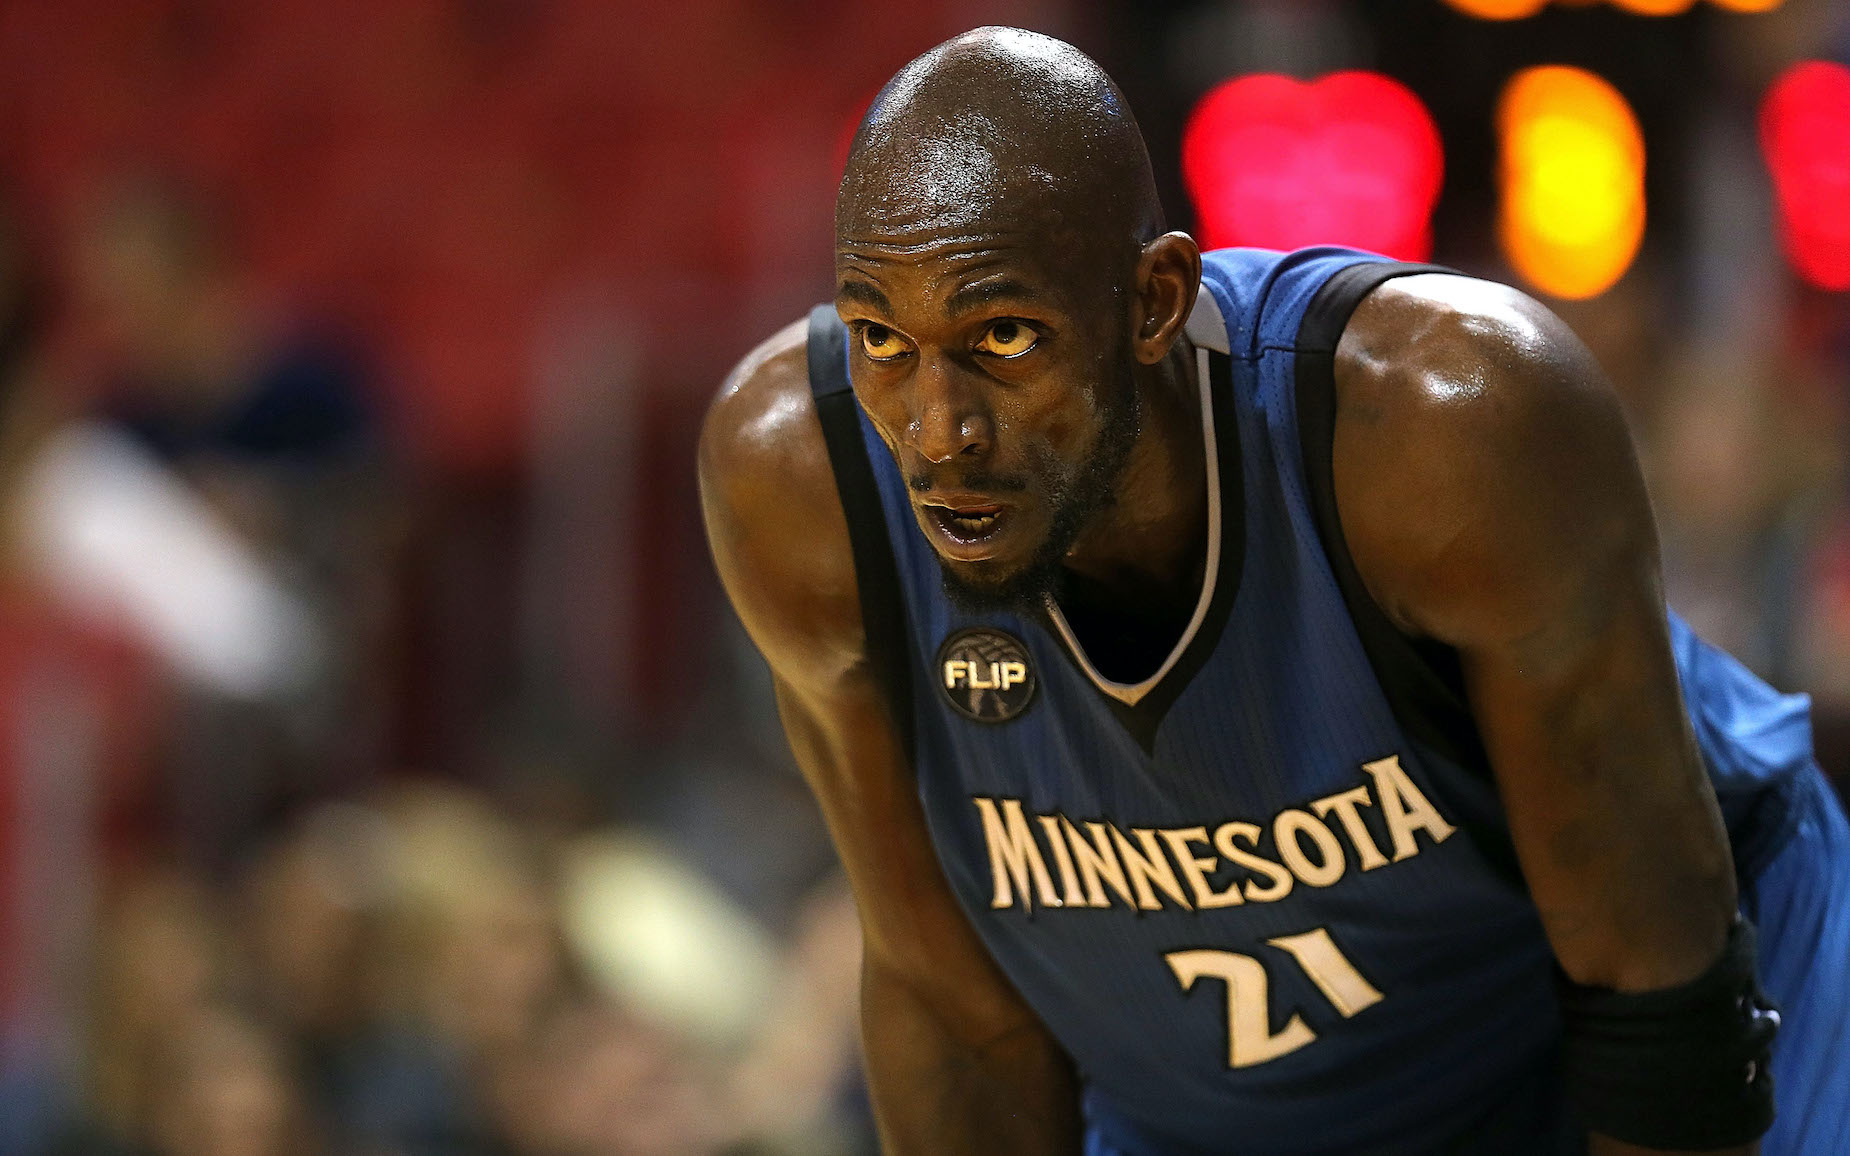 Kevin Garnett Revealed the 'Only Regret' of His Hall of Fame NBA Career and It Involves a Team Other Than the Timberwolves